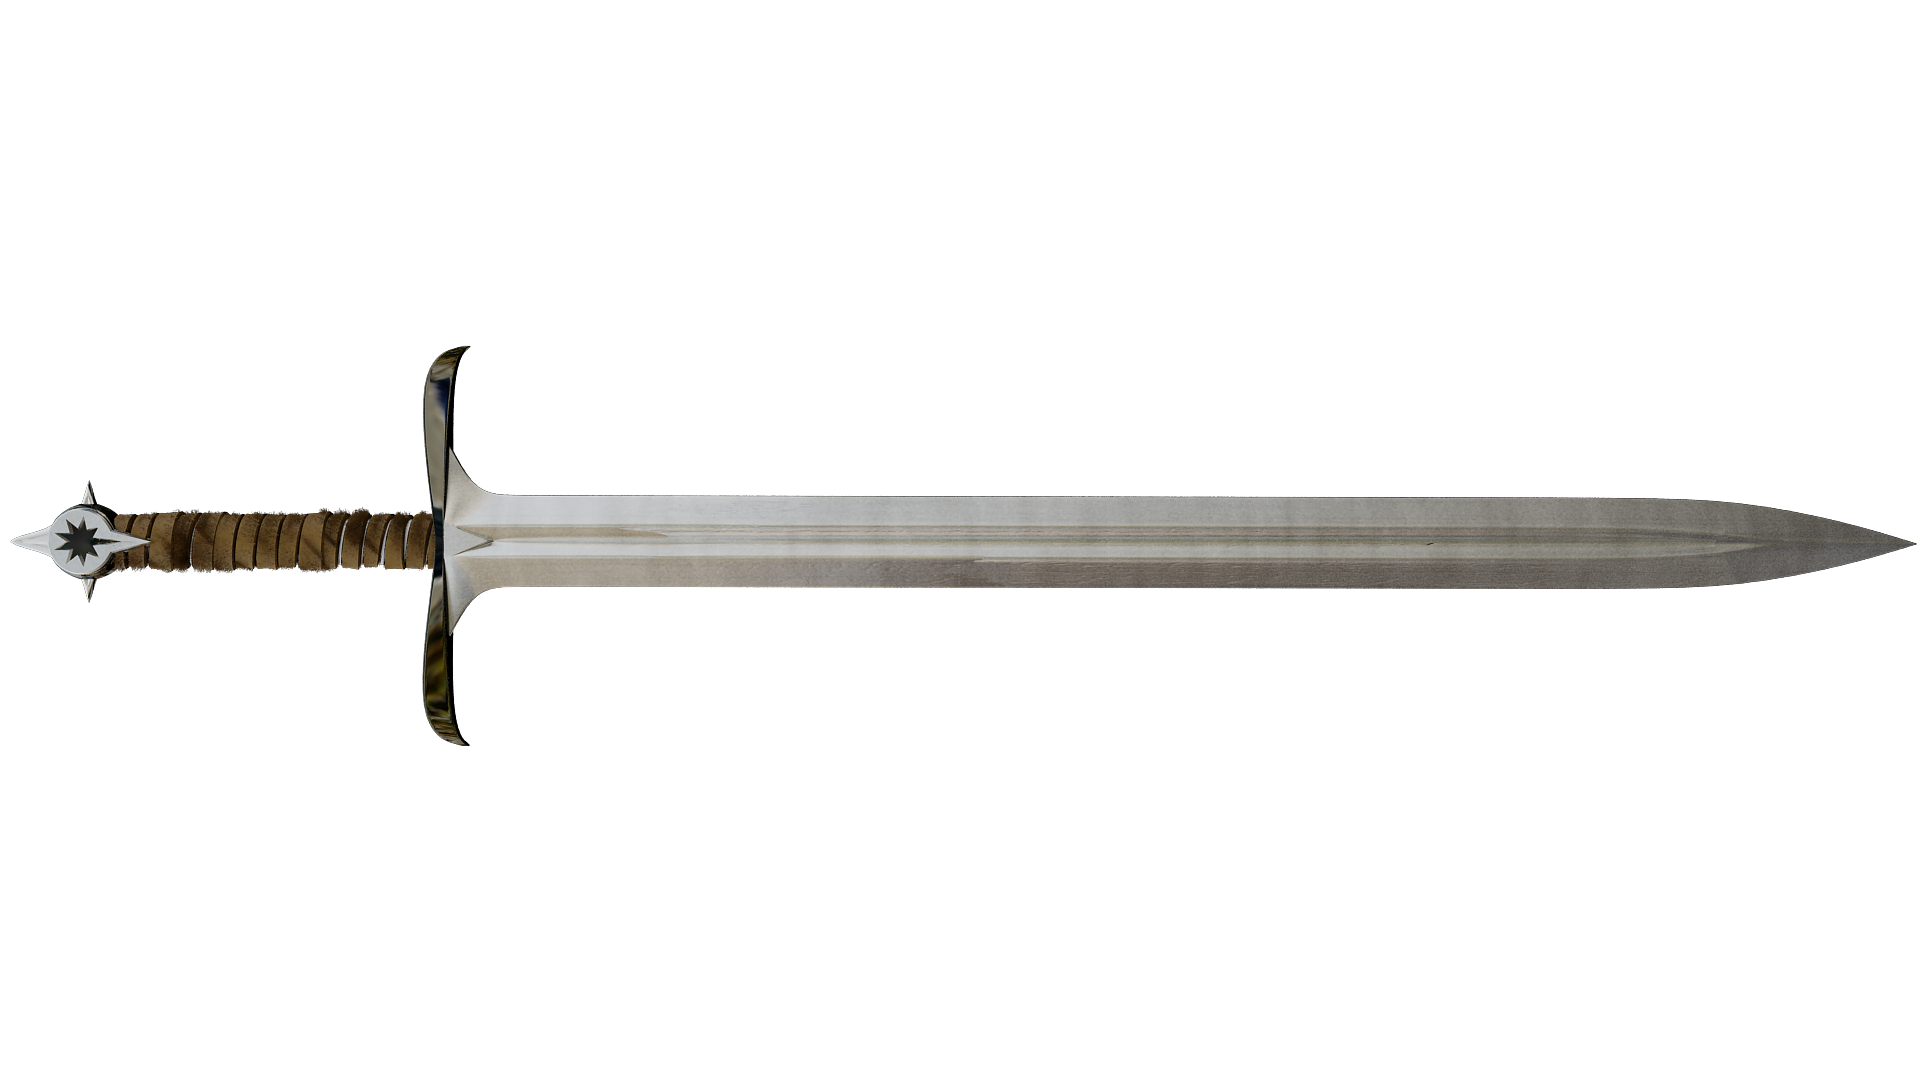 Réclamation des modifications de stats. Sword-hd-png-sword-png-image-1920